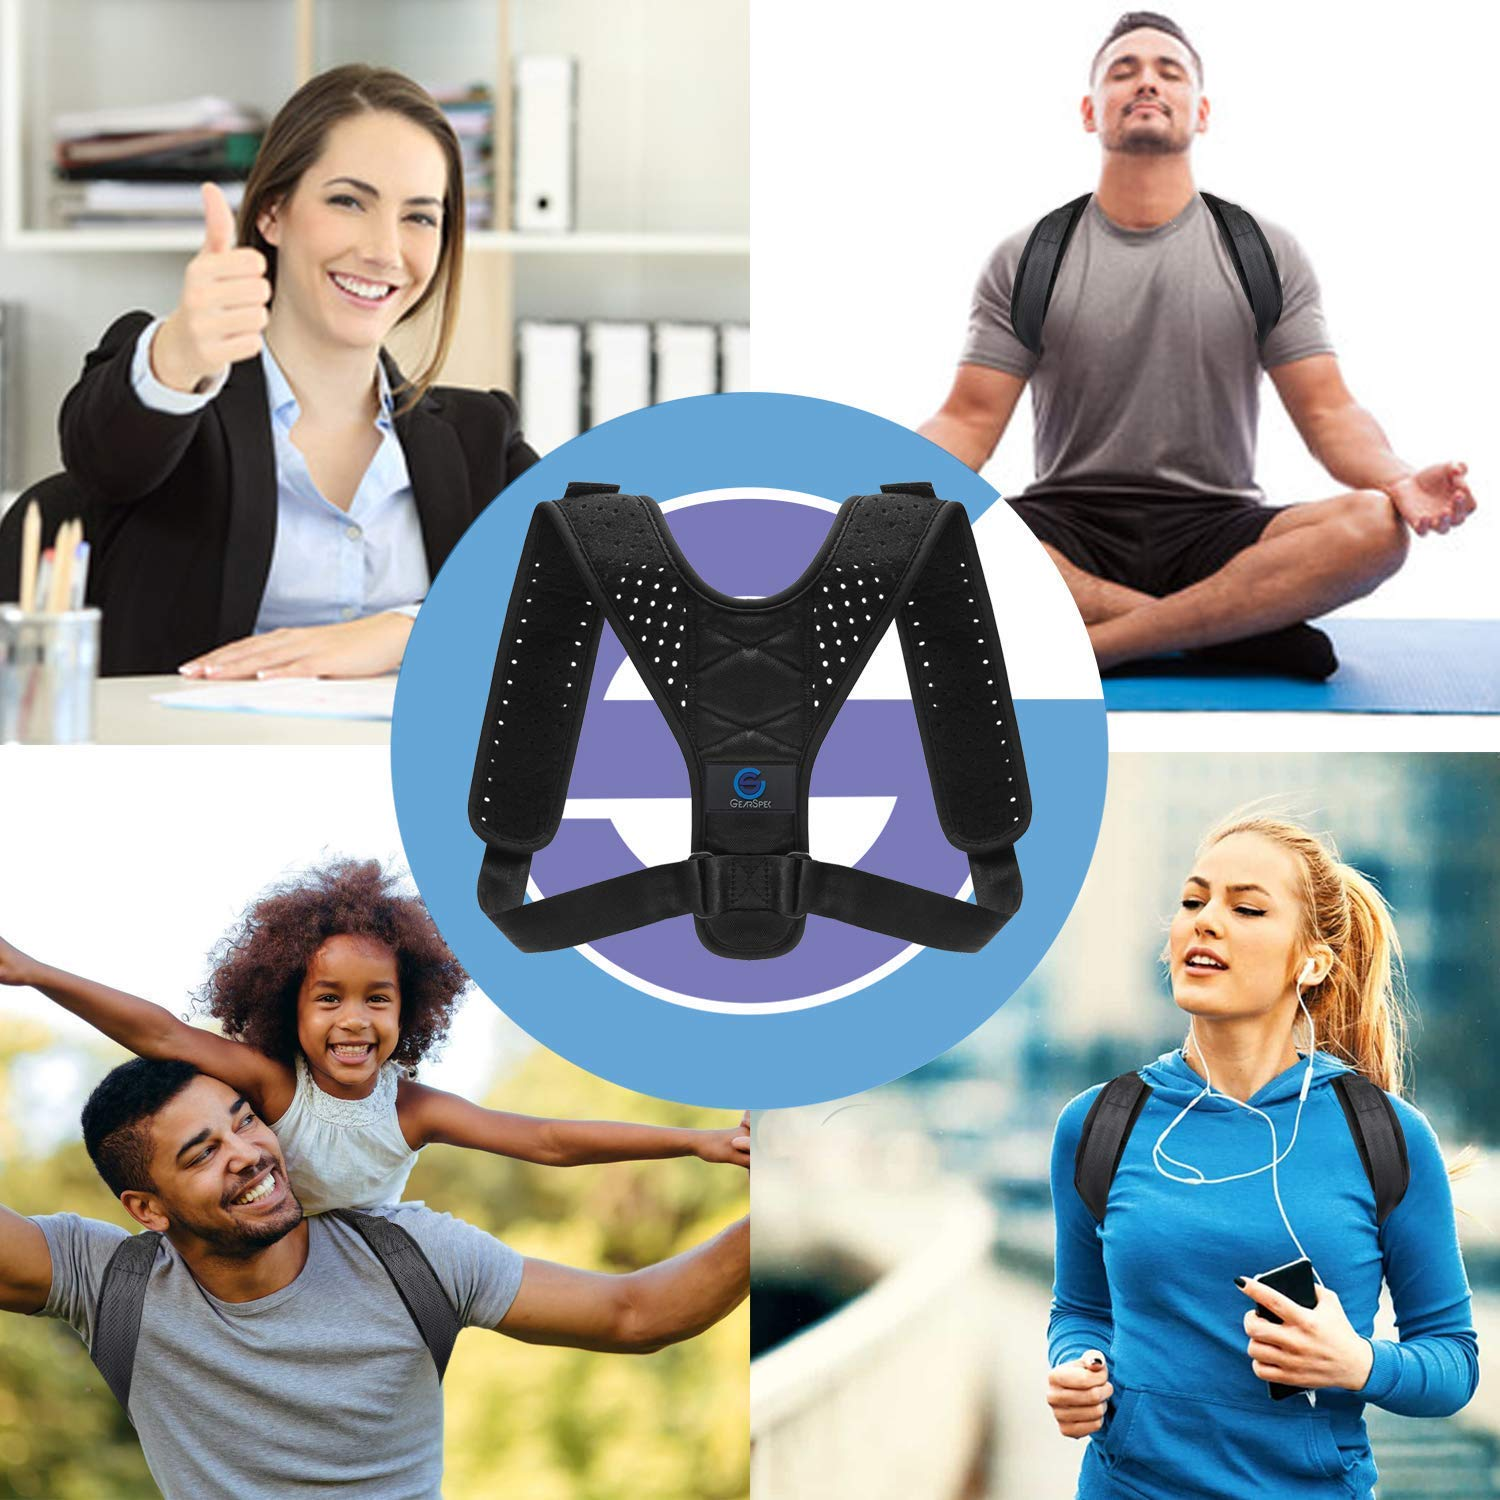 Posture Corrector Back Brace Support for Women and Men,Relieves Back & Shoulders Pain,Corrects Slouching,Hunching Adjustable Posture Corrector Back Shoulders Clavicle Support with Laundry Bag